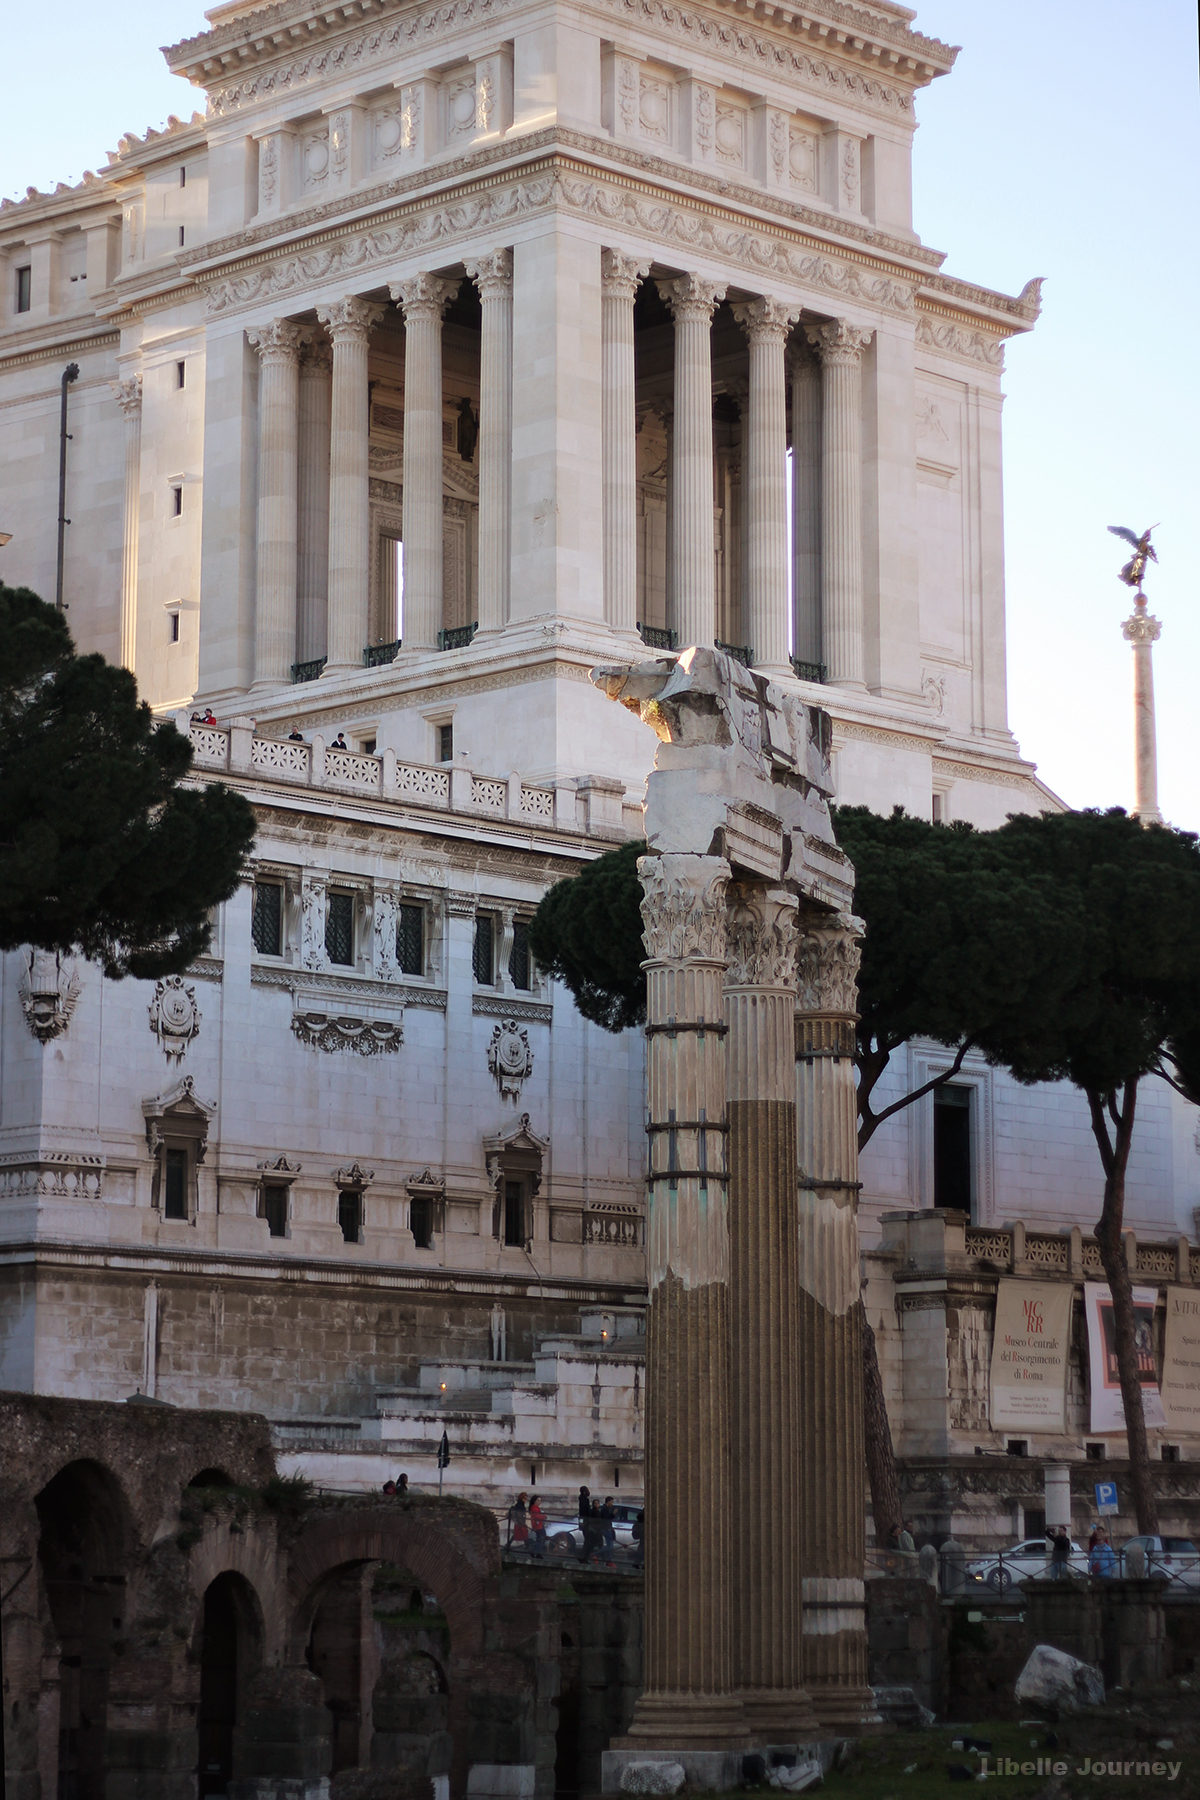 The Temple of Venus Genetrix and Monumento Nazionale a Vittorio Emanuele II